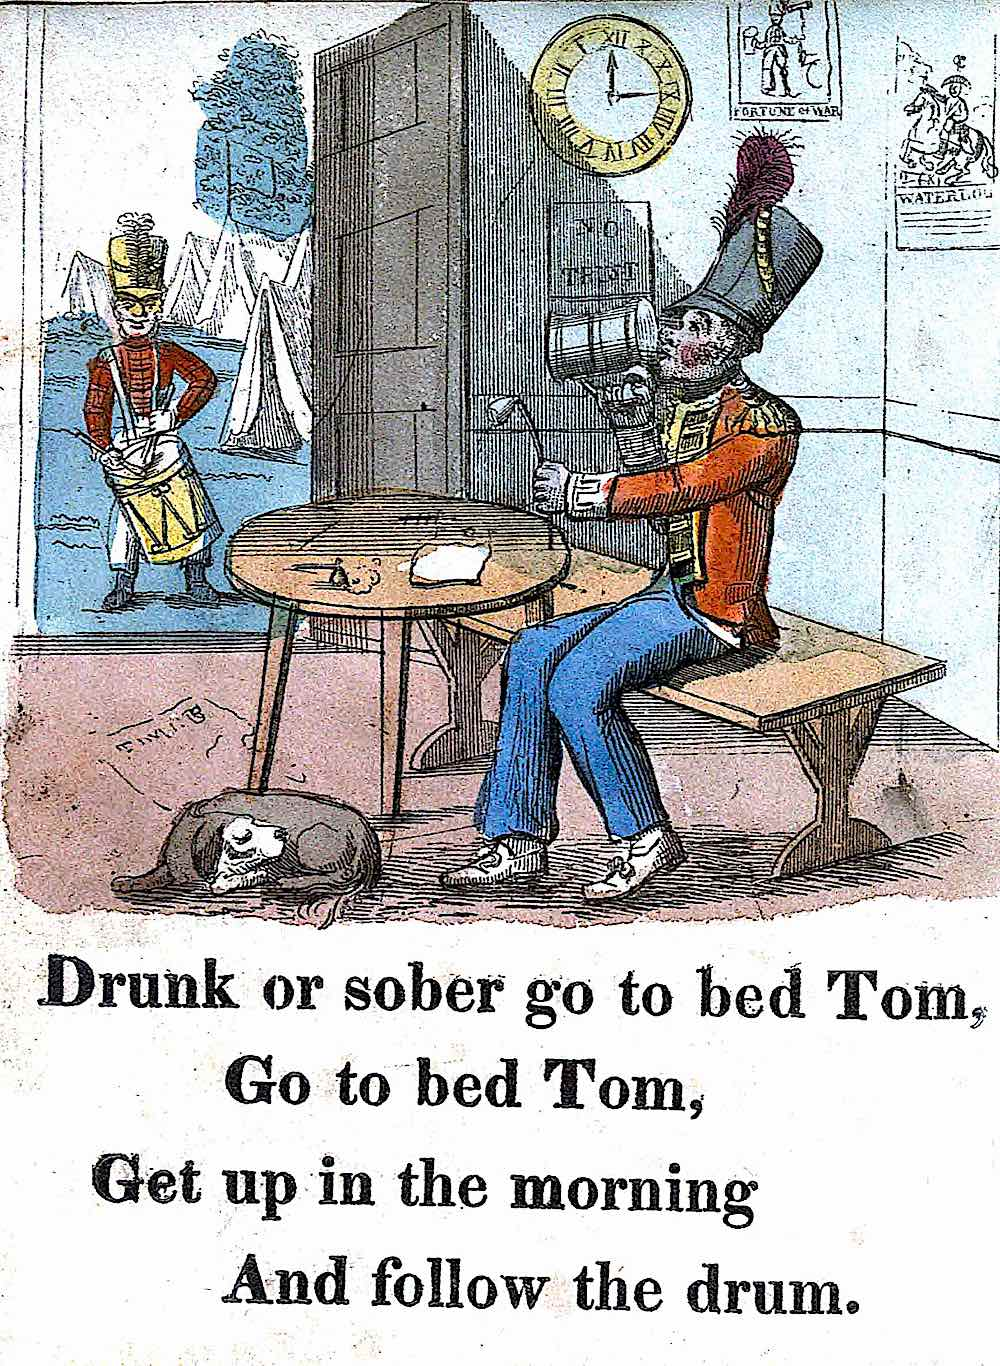 a 1825 child schoolbook about war and alcoholism